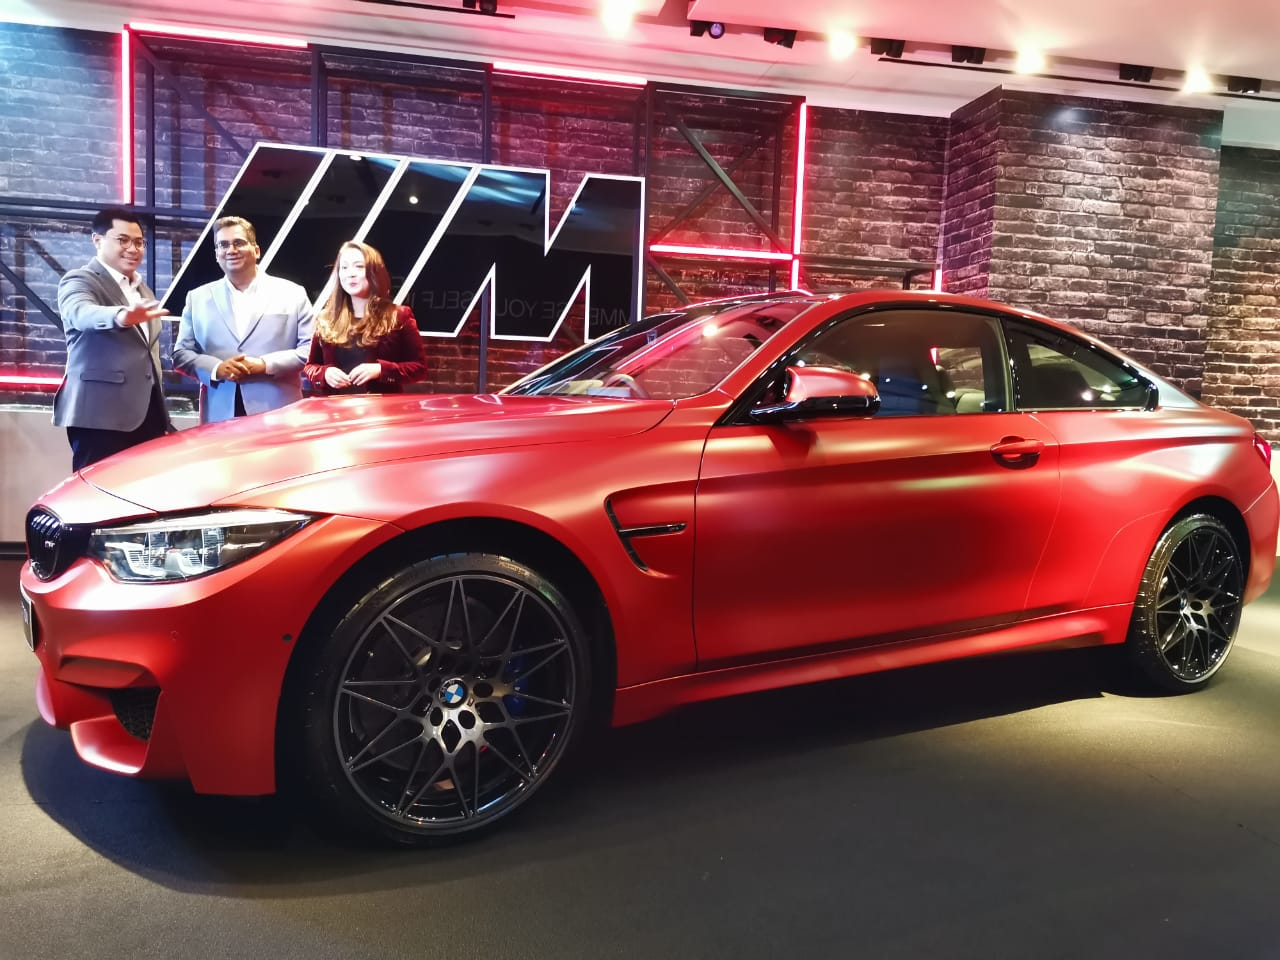 Hanya Ada 2 Unit BMW M4 Competition di Indonesia